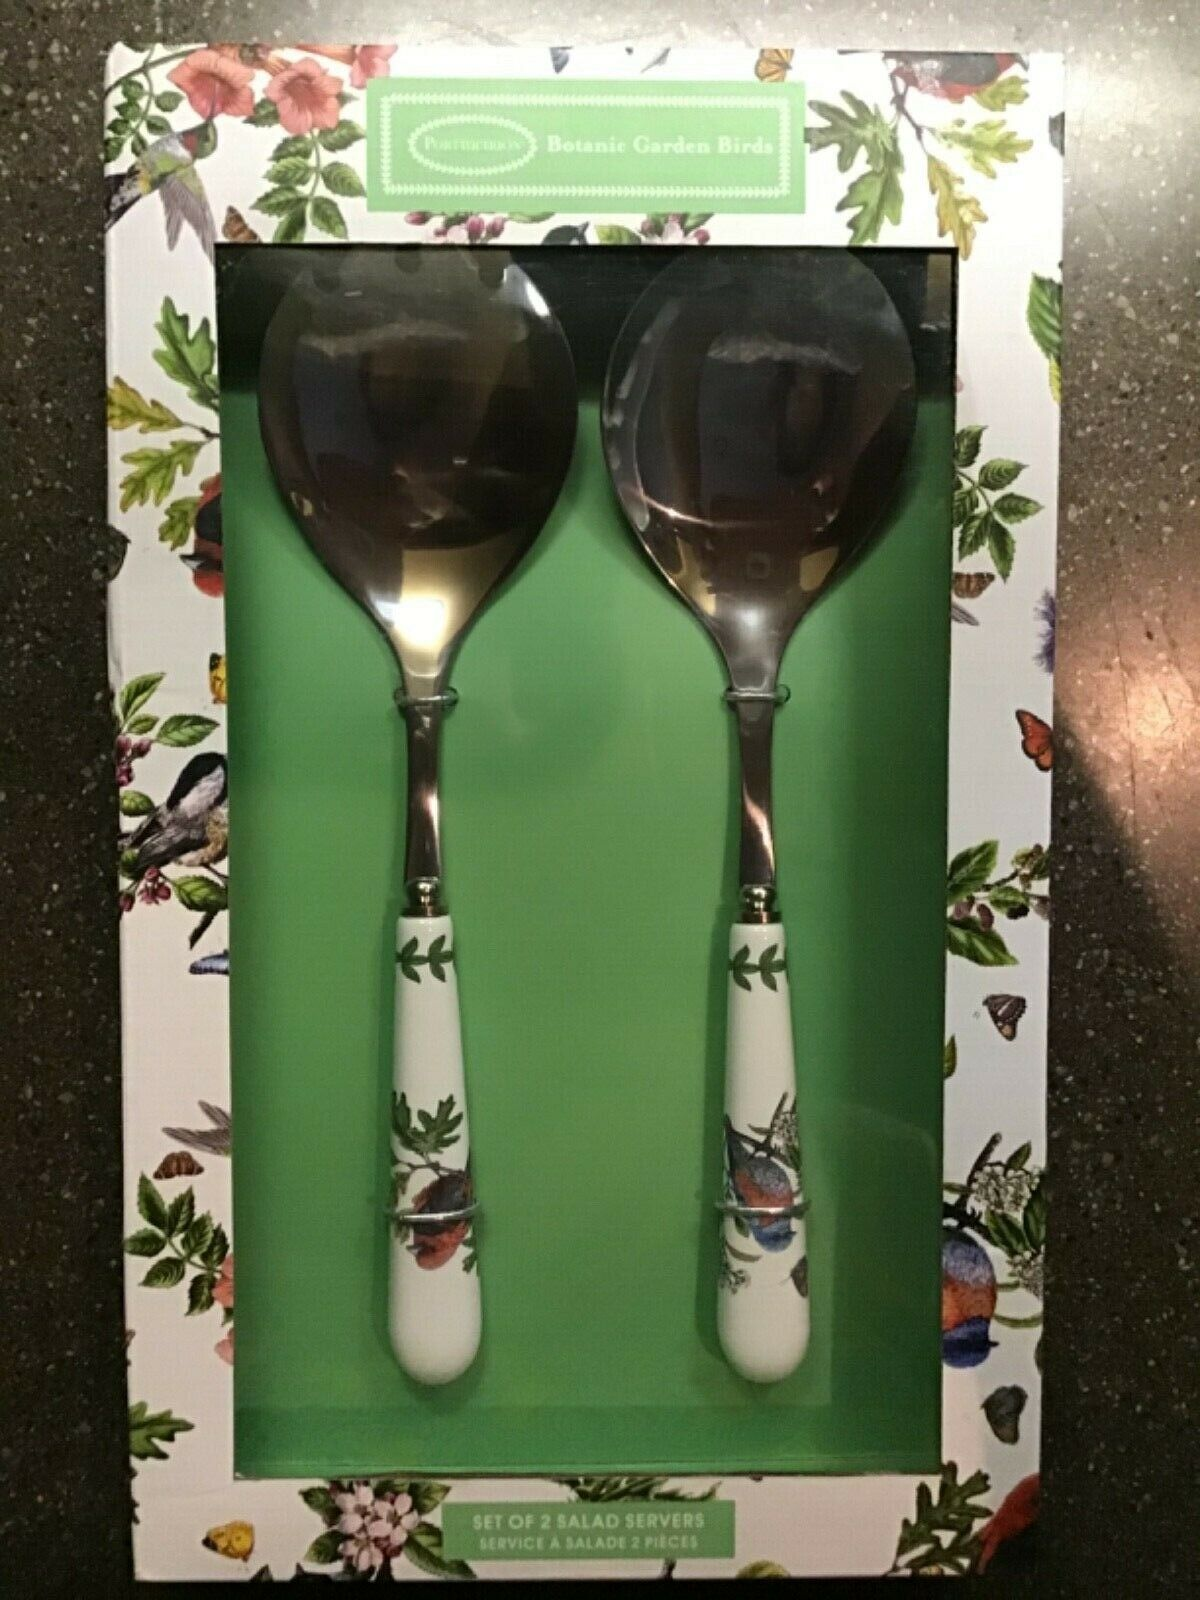 Portmeirion BOTANIC GARDEN BIRDS Salad Servers SET OF 2 Spoo